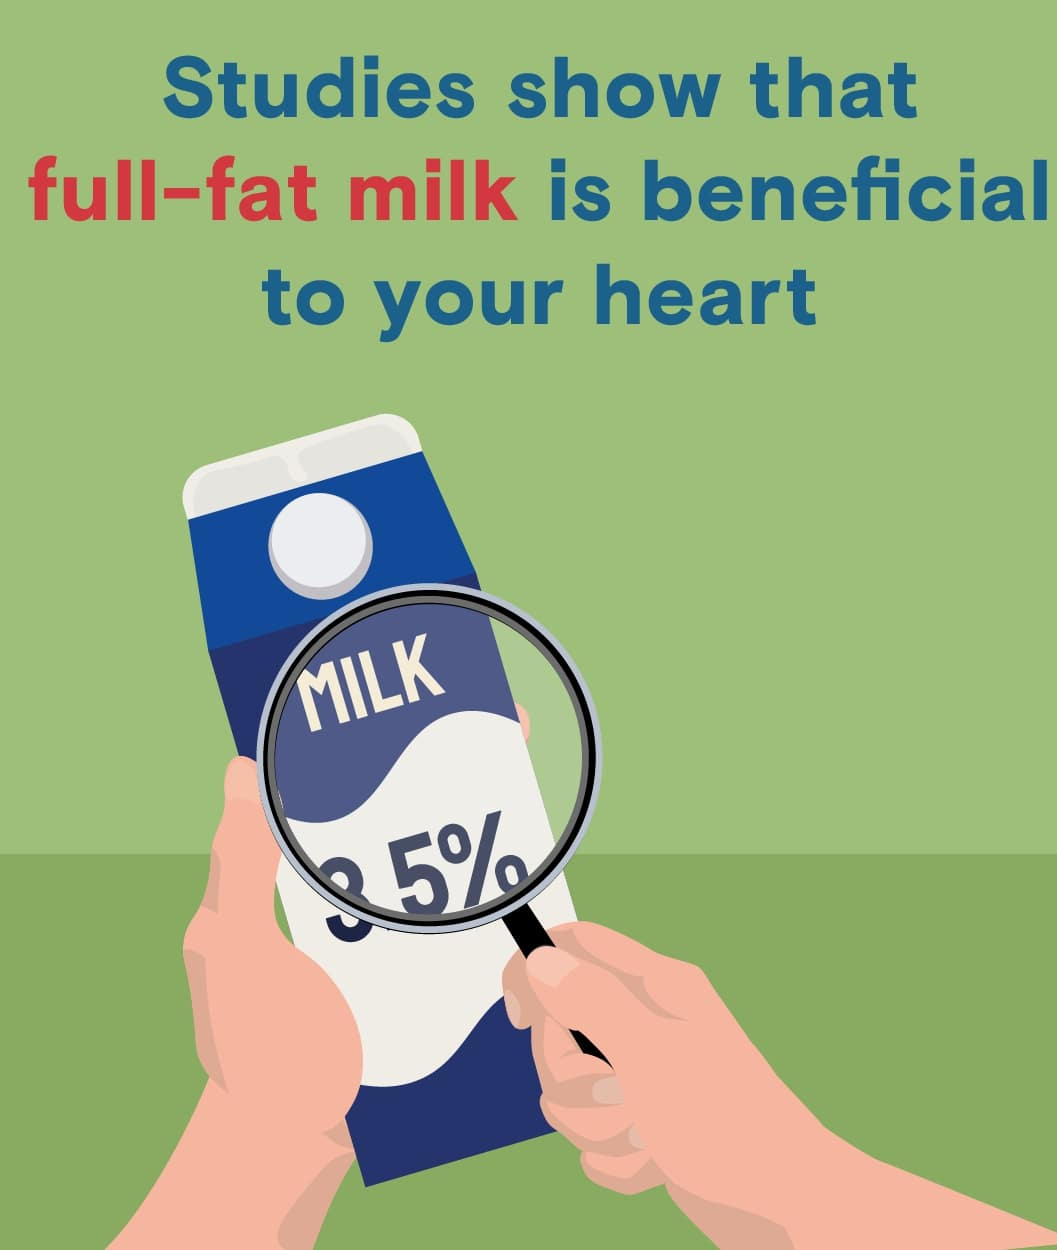 benefits of full-fat milk for your heart